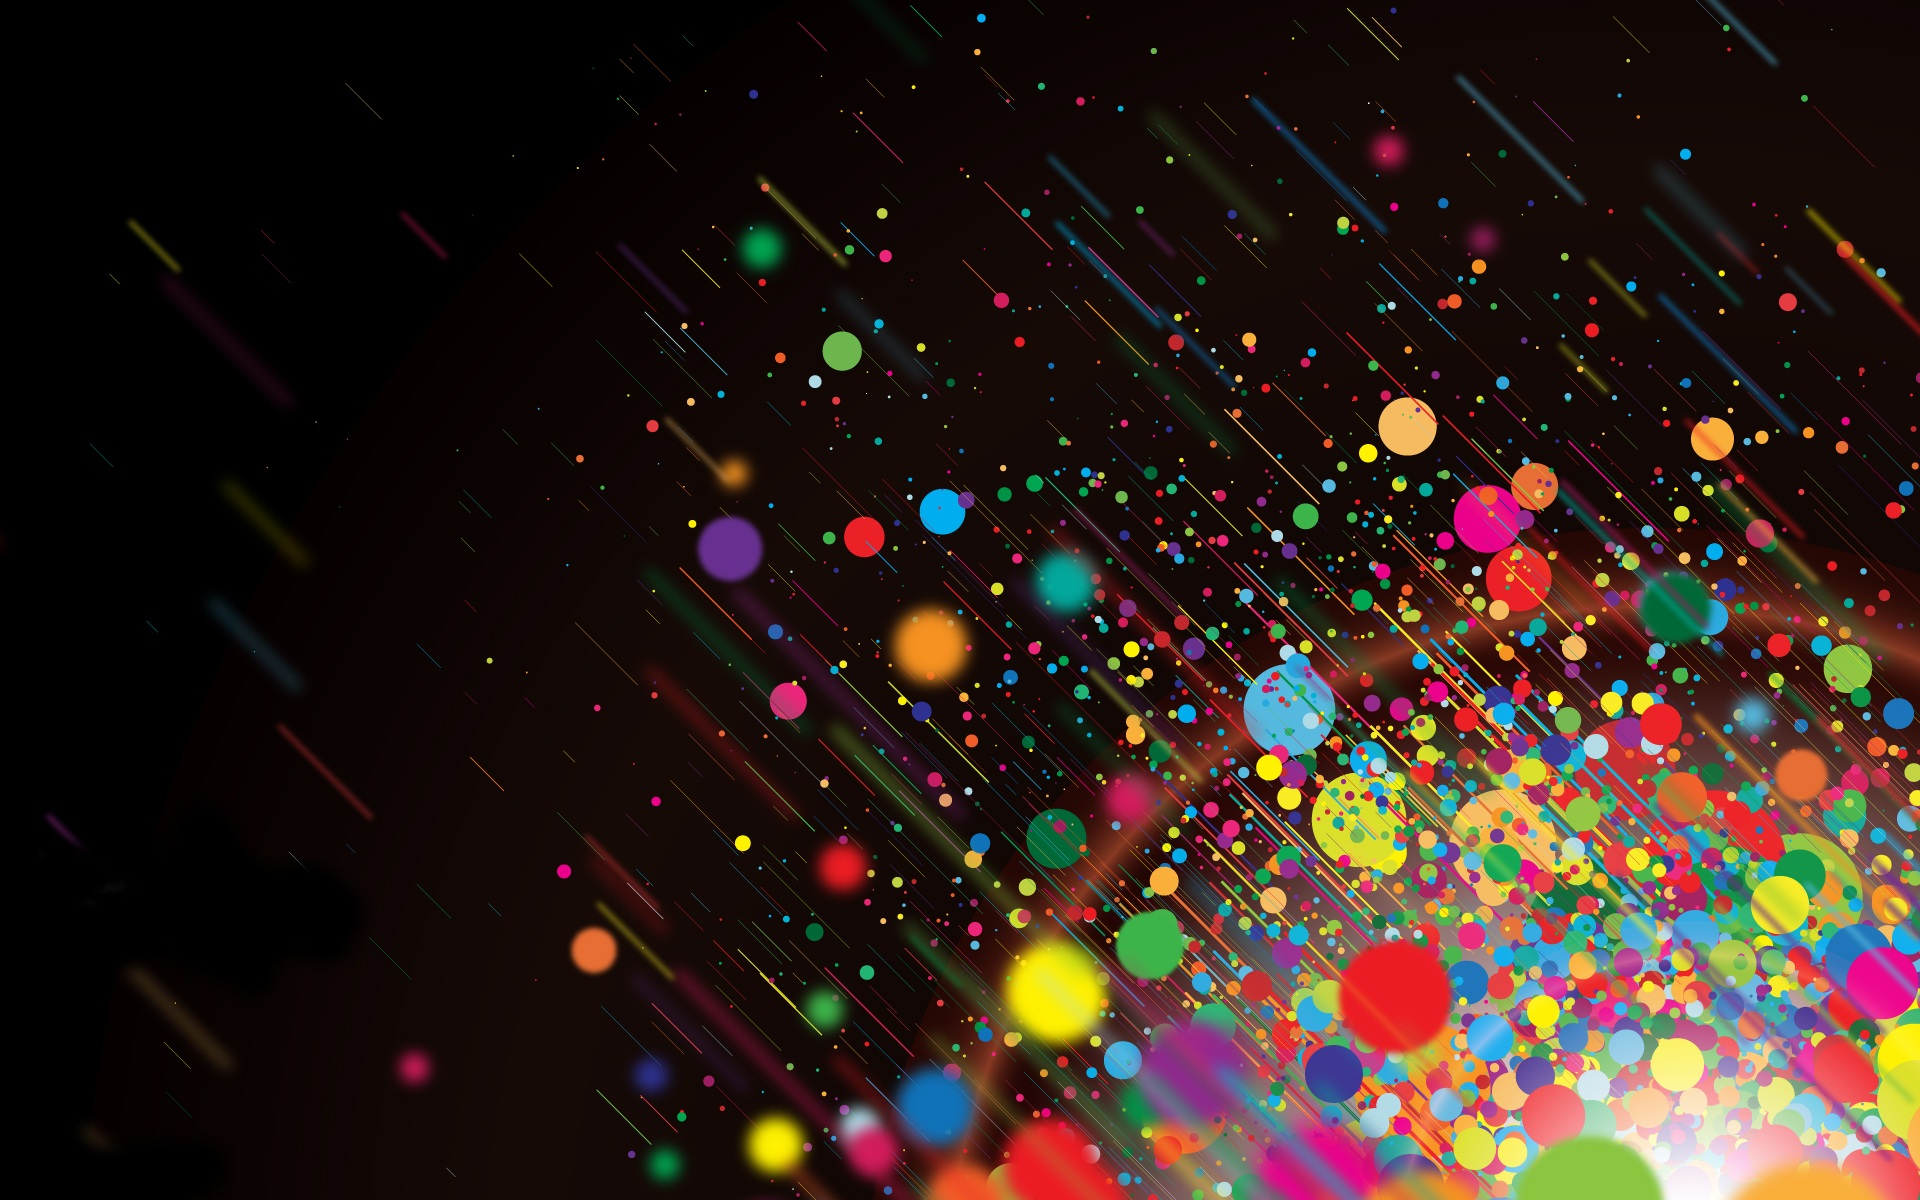 Colorful Abstract Wallpapers, Amazing High Definition Colorful